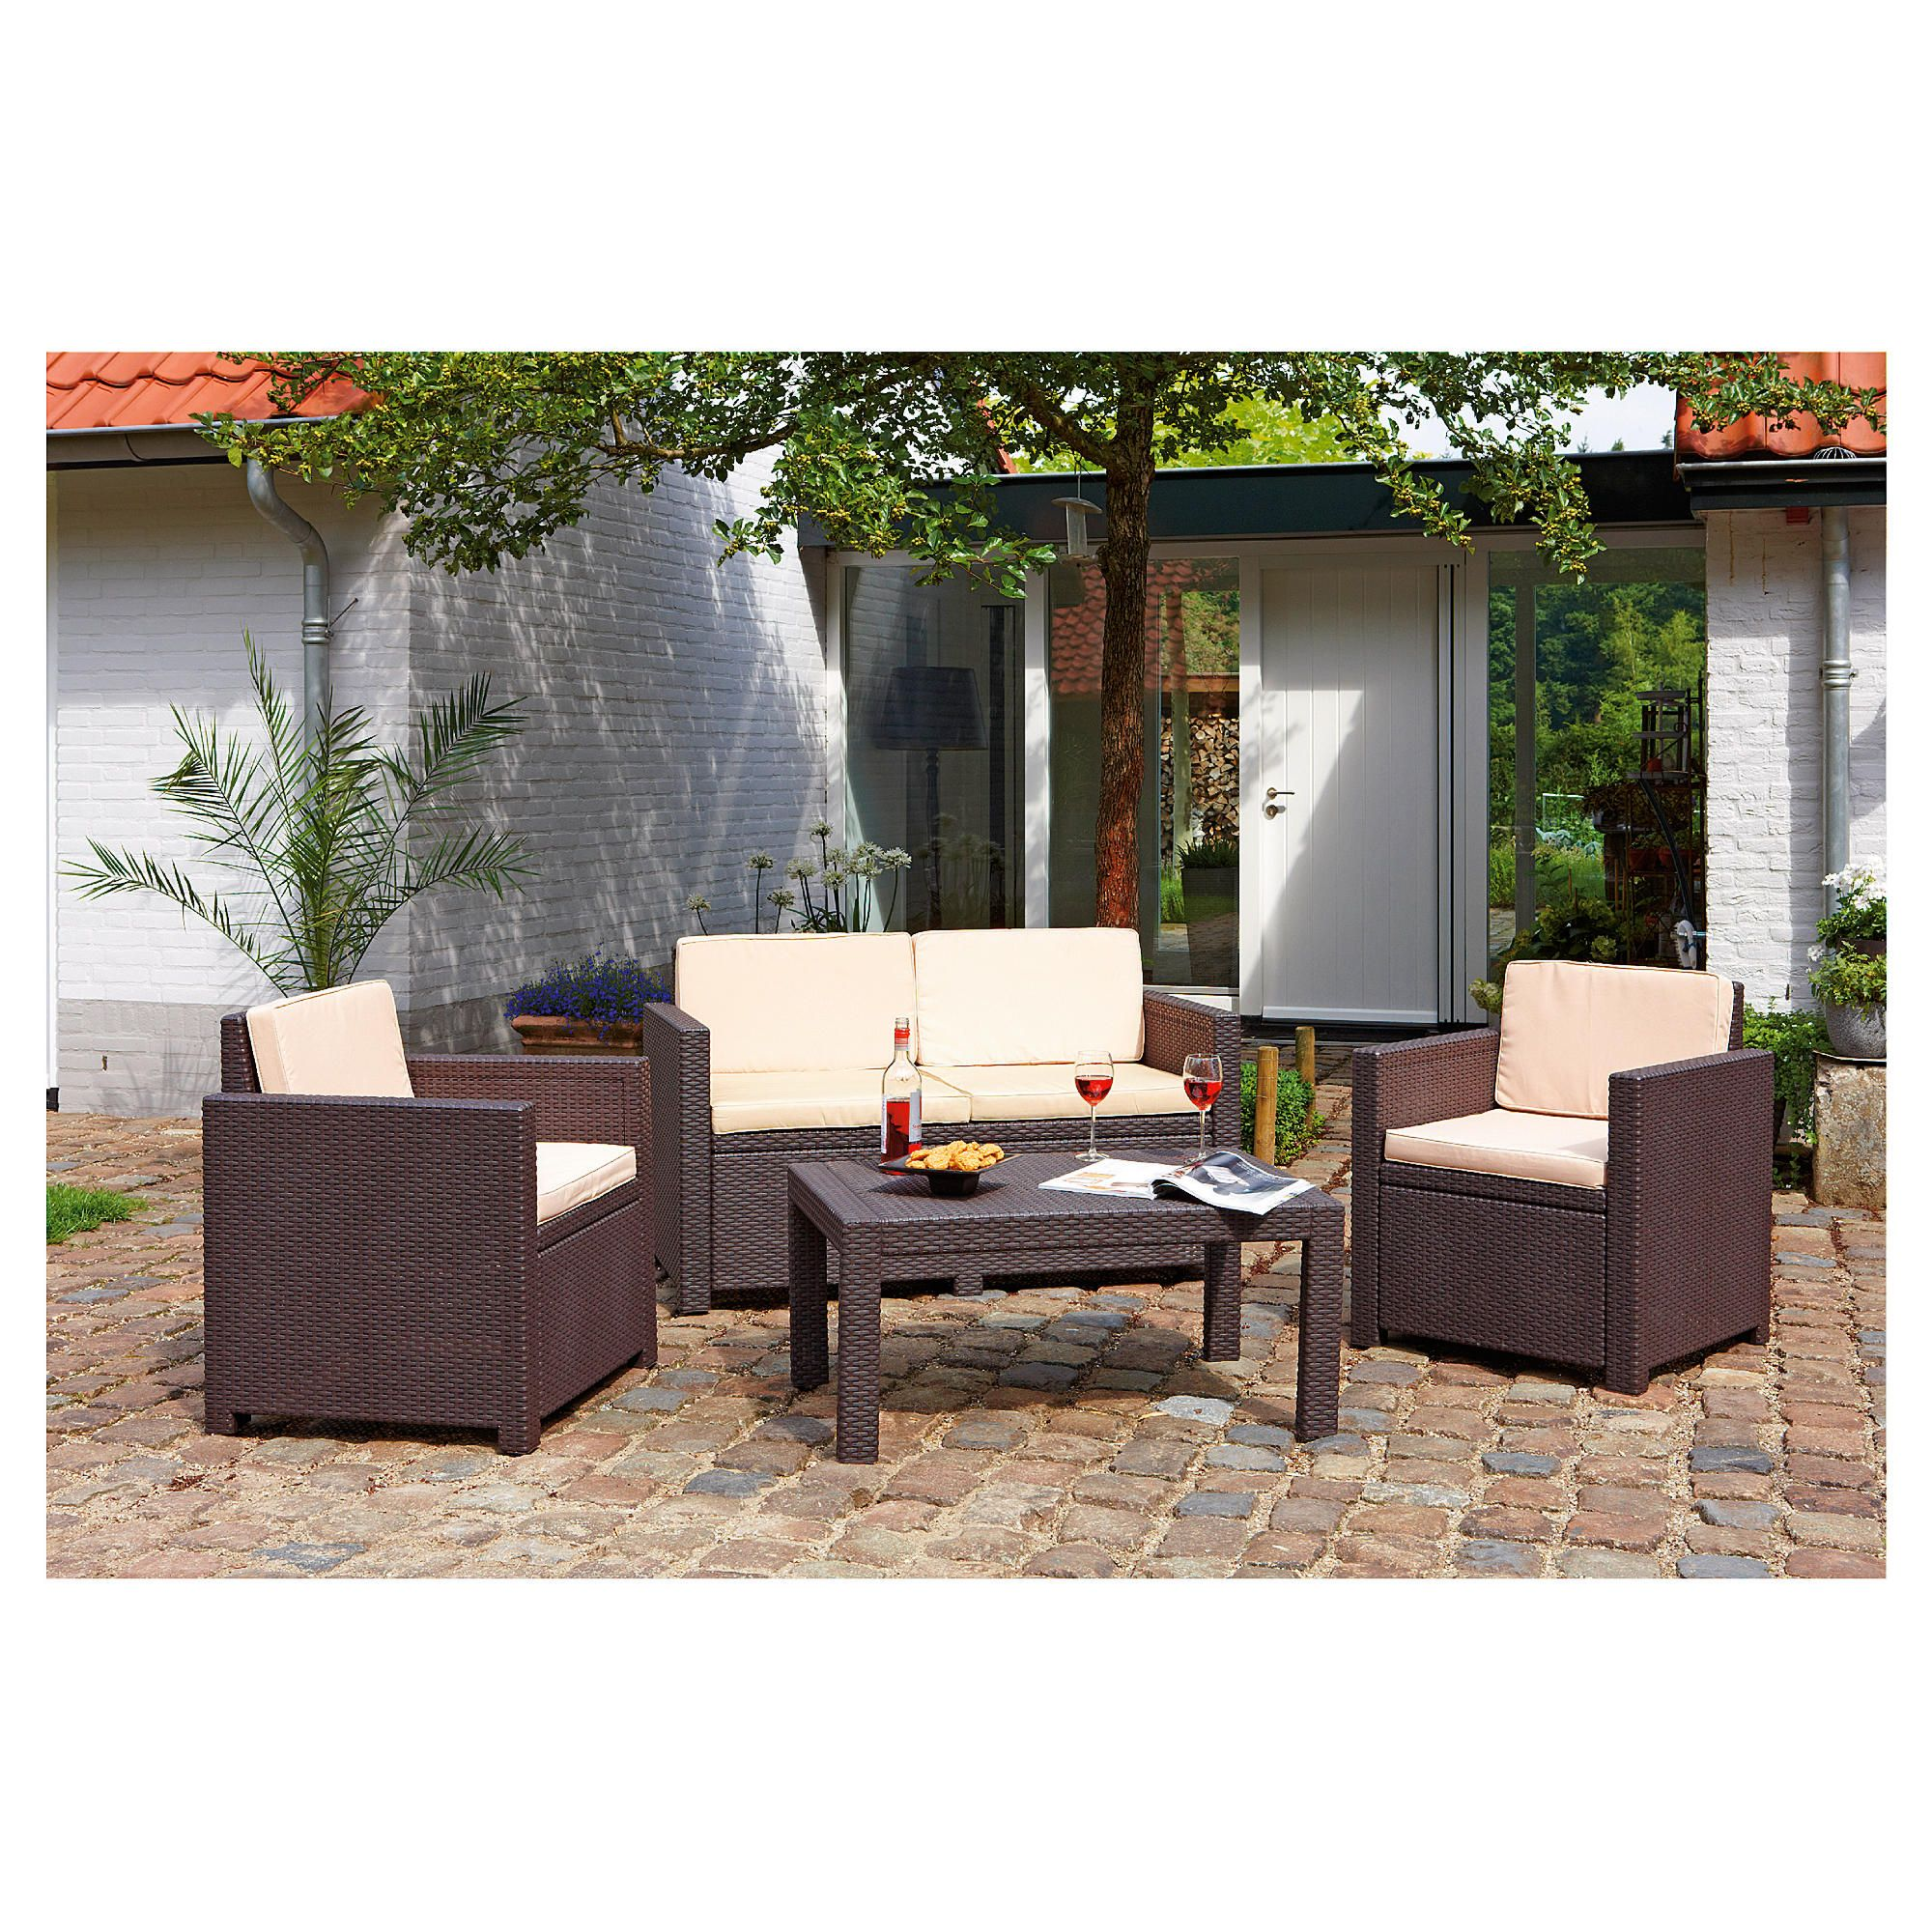 Allibert Victoria rattan effect 4 piece lounge set at Tesco Direct